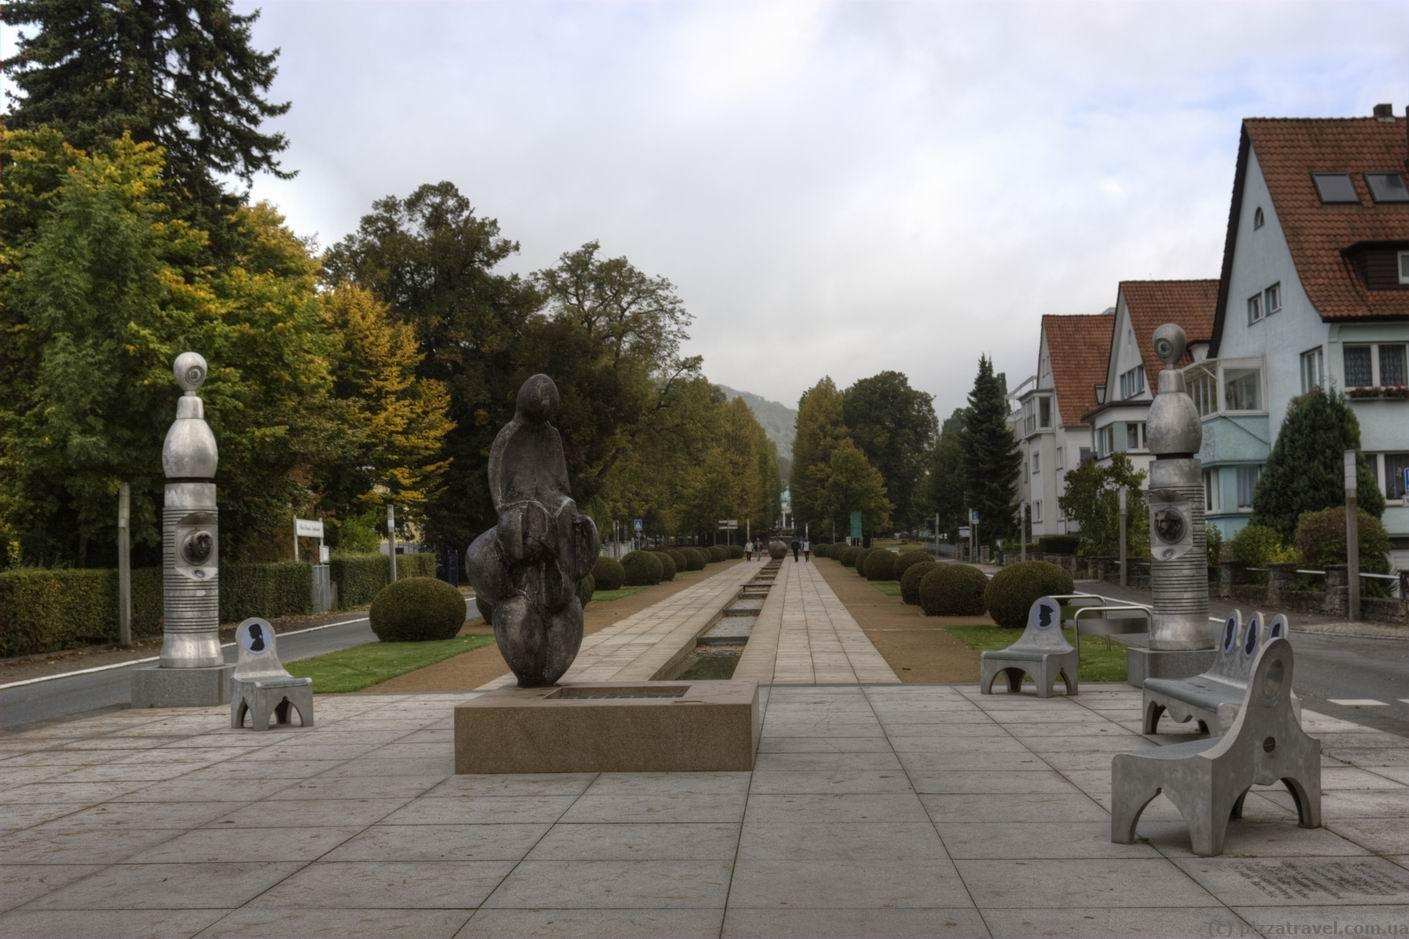 Bad Pyrmont Germany  city photos gallery : Bad Pyrmont Germany Blog about interesting places